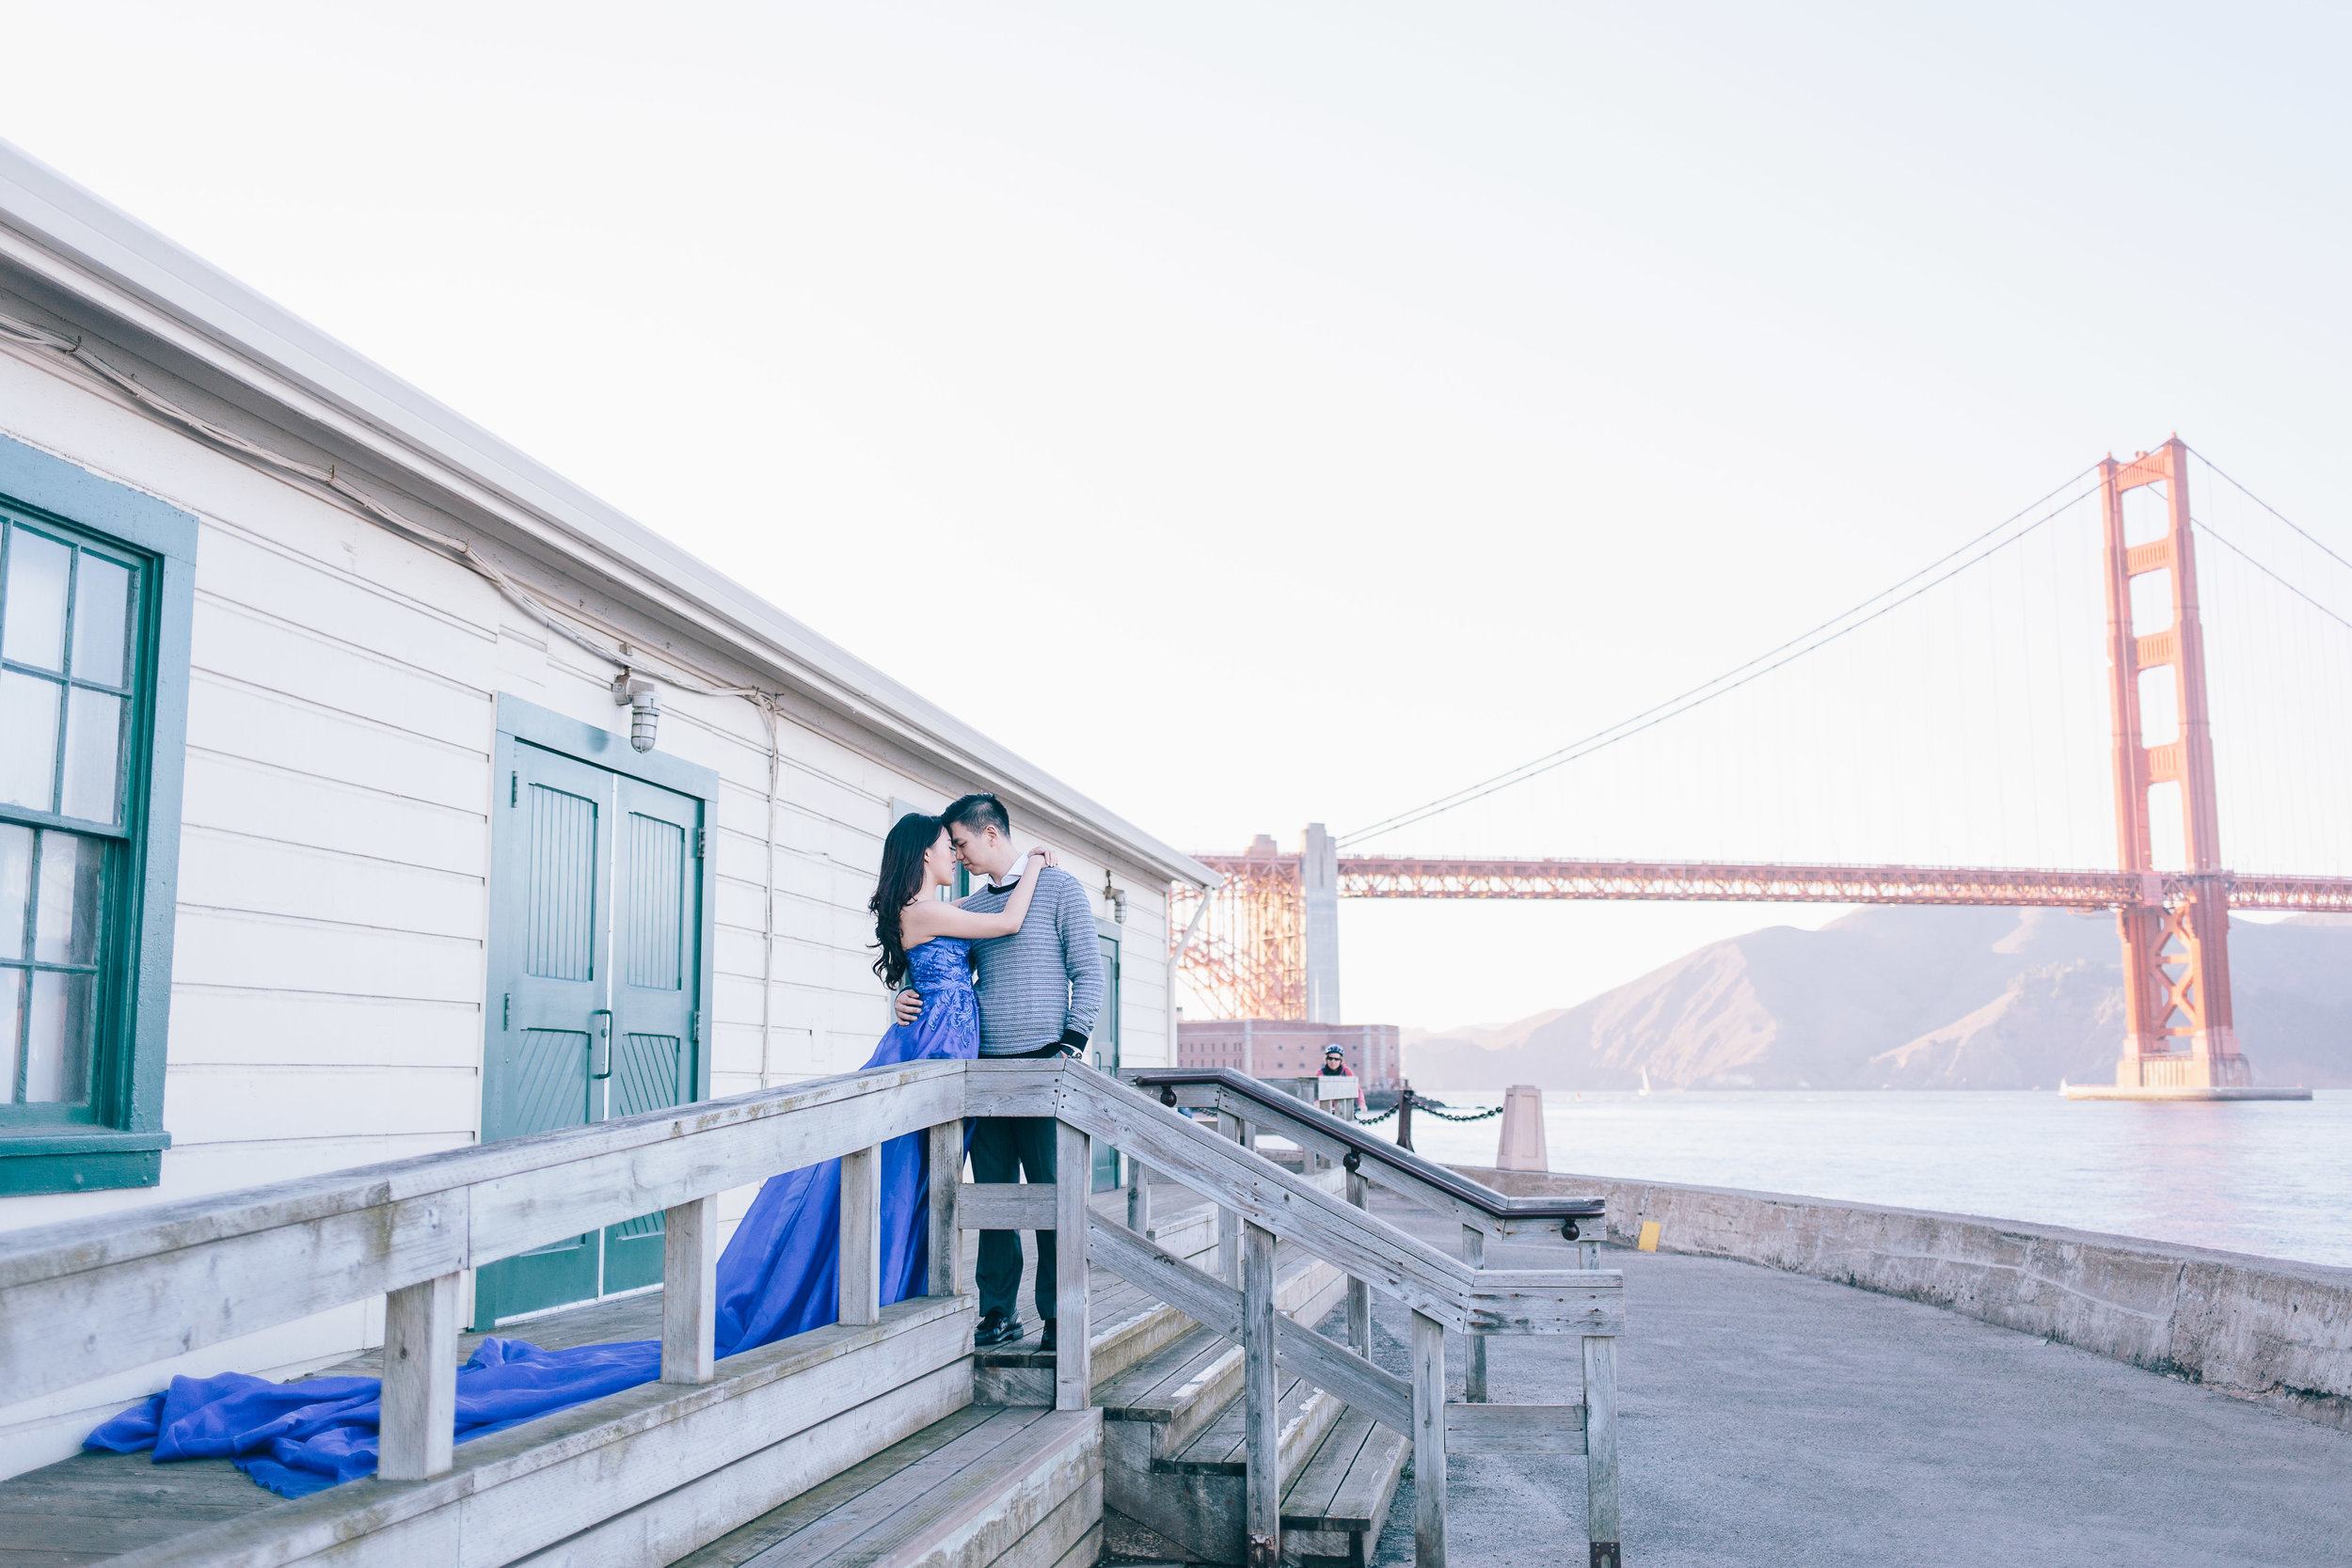 Pre-Wedding Photos in San Francisco by JBJ Pictures Pre-Wedding Photographer, Engagement Session and Wedding Photography in Napa, Sonoma, SF Bay Area (13).jpg